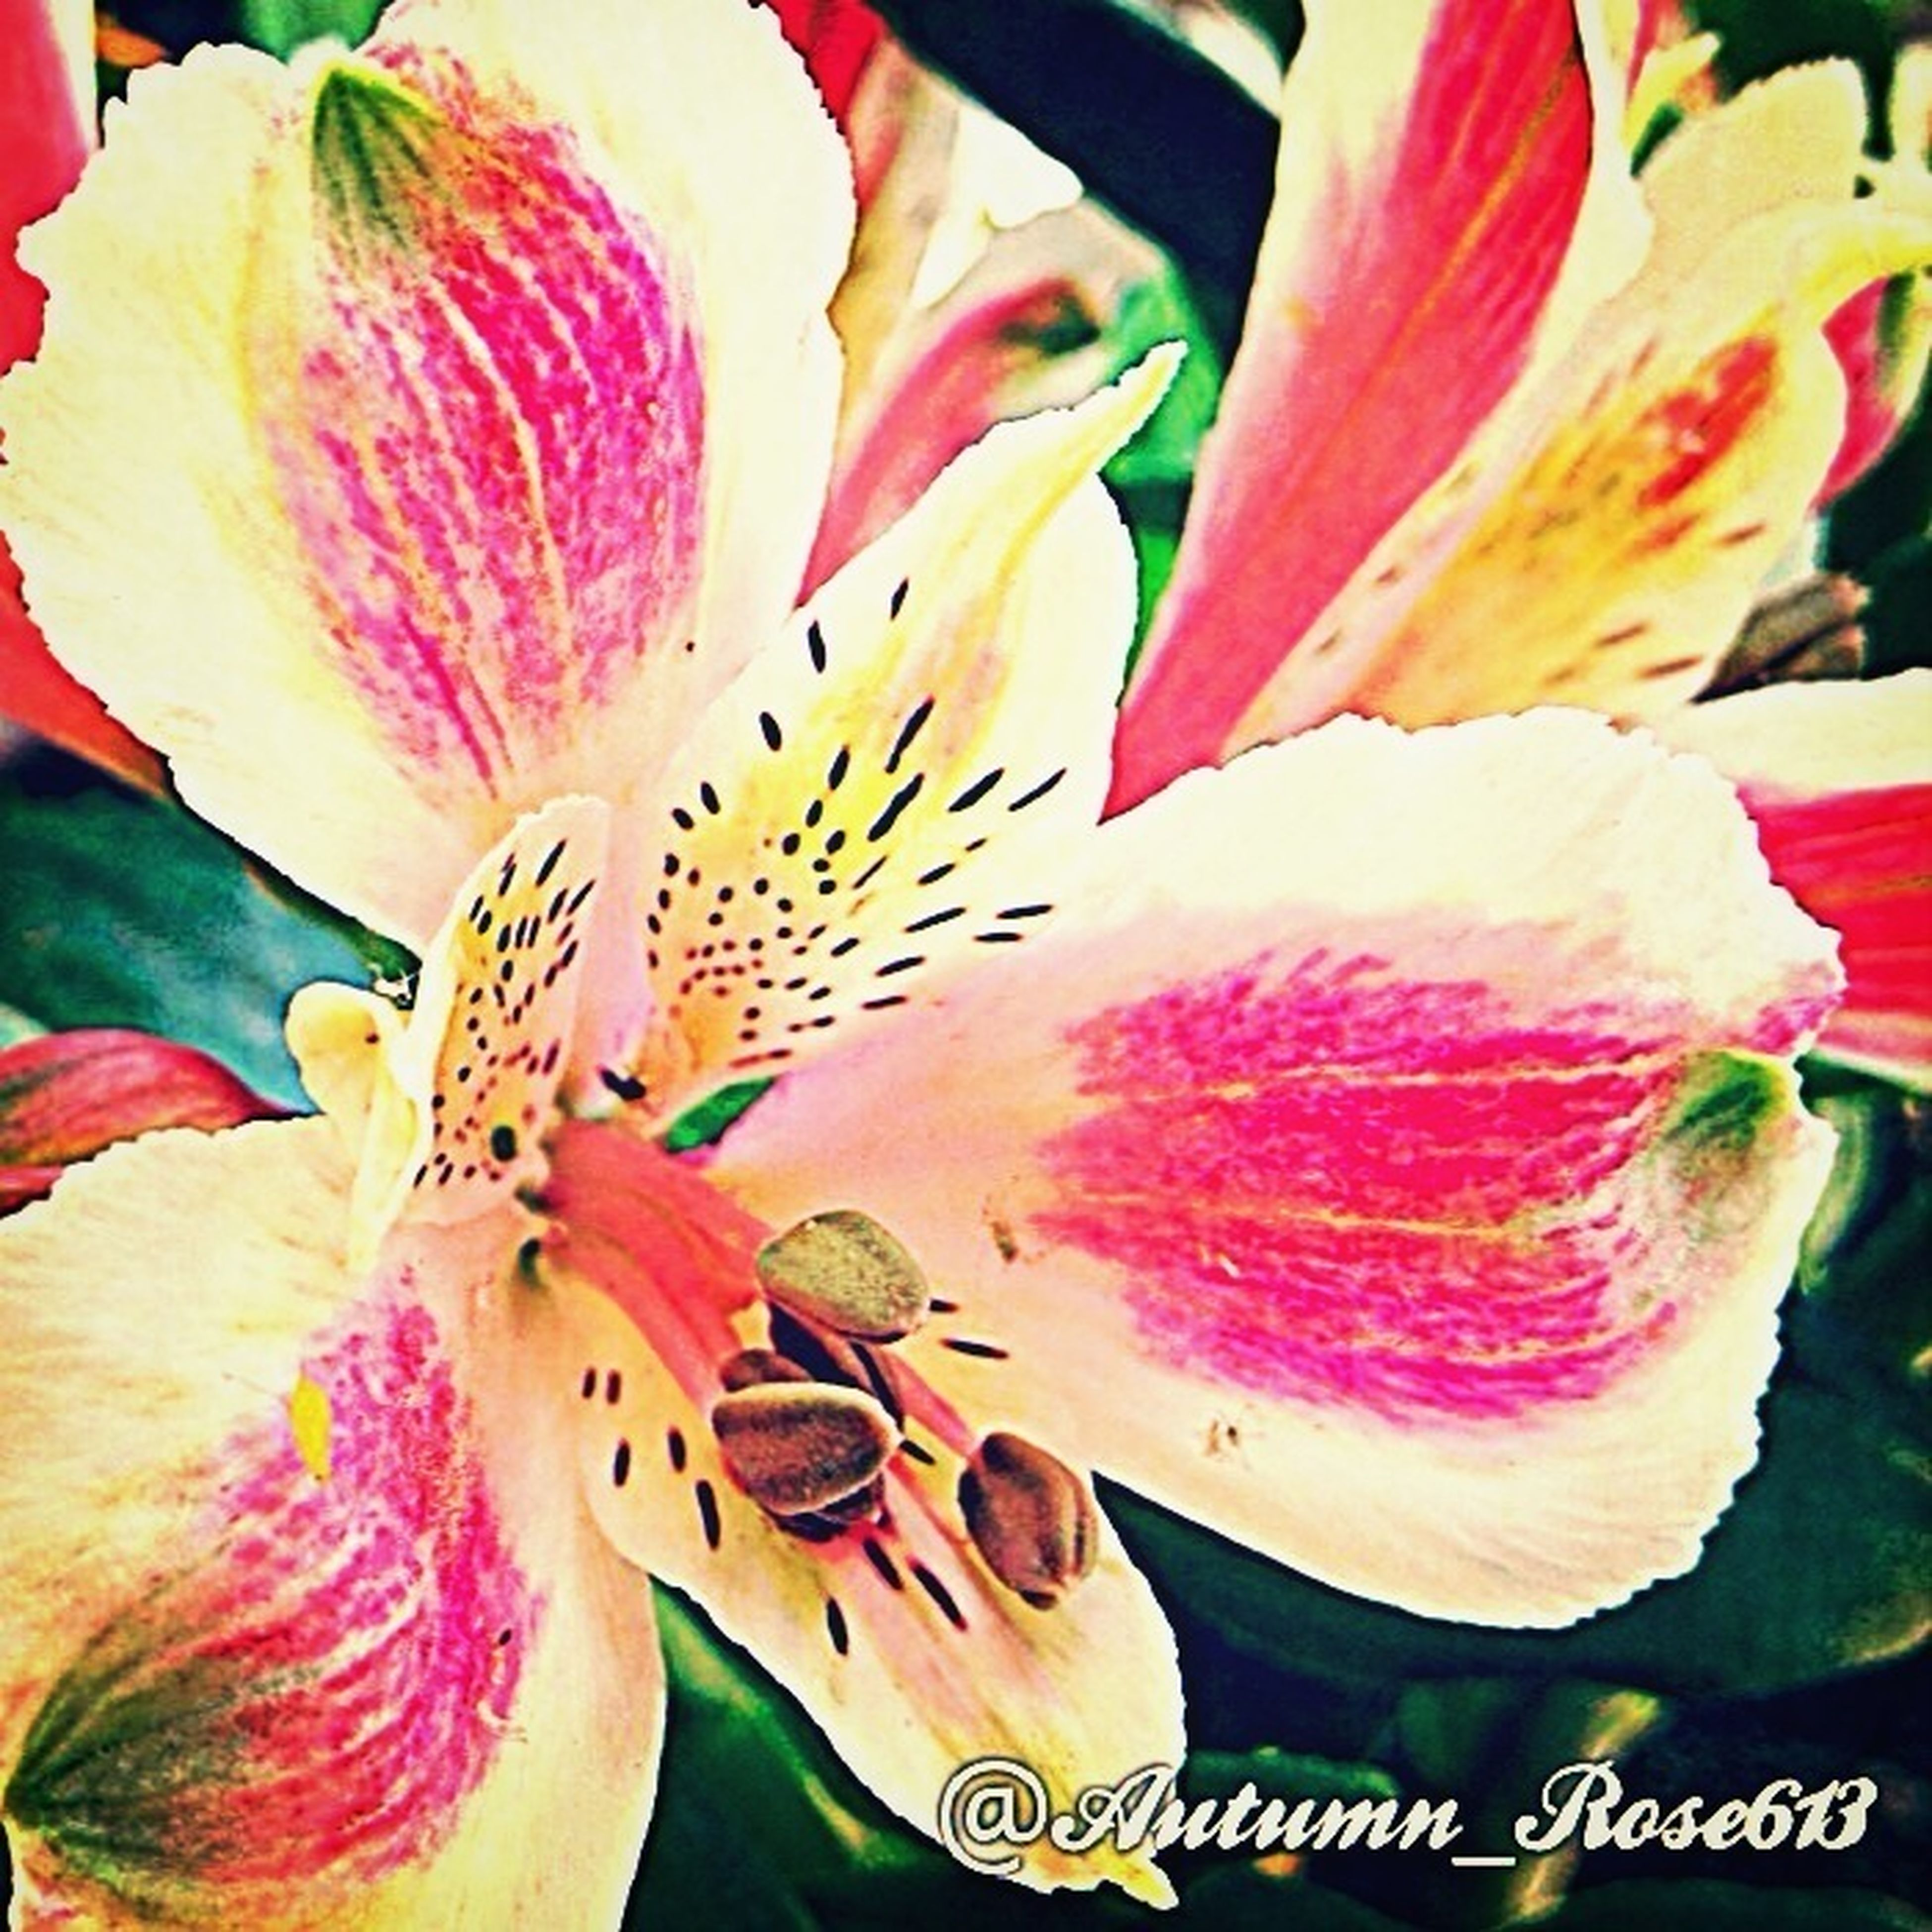 flower, petal, freshness, flower head, fragility, close-up, pink color, beauty in nature, nature, growth, indoors, stamen, yellow, blooming, plant, pollen, no people, multi colored, single flower, day